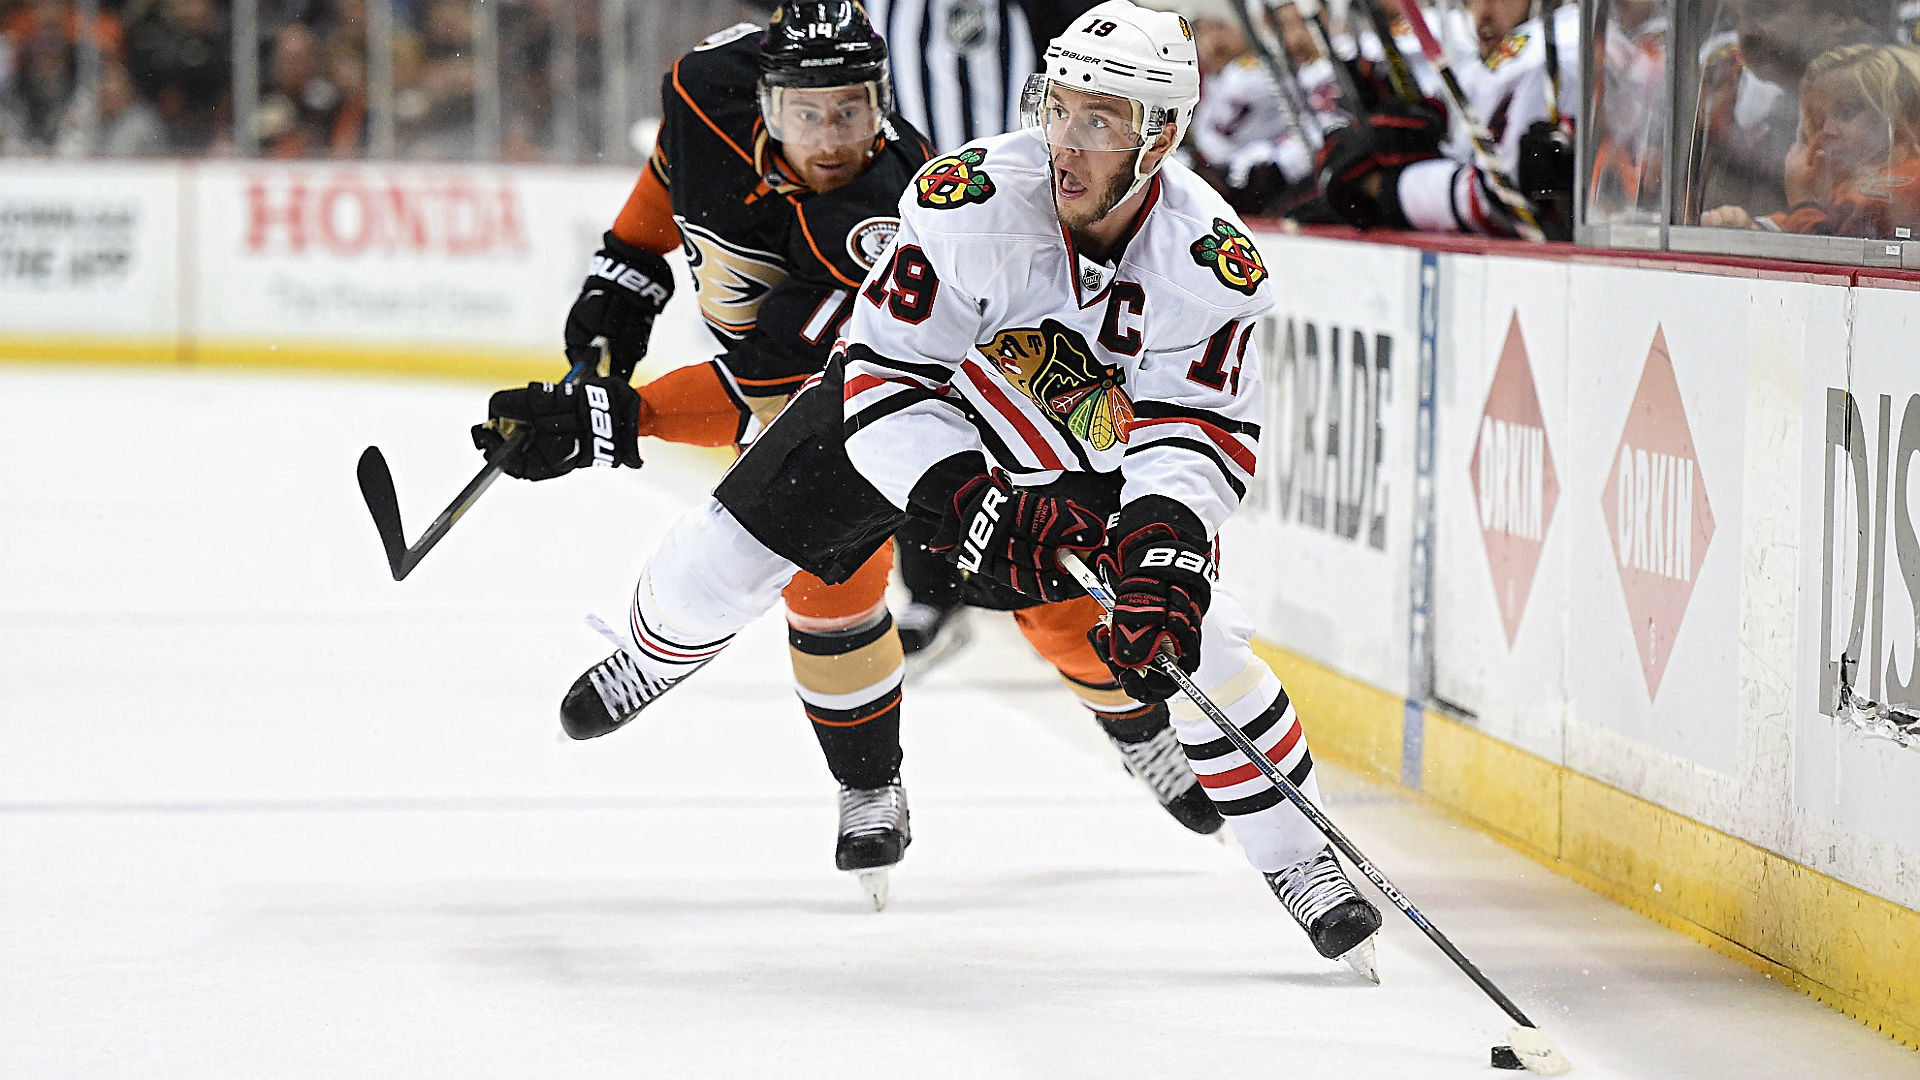 Ducks vs. Blackhawks Game 6 odds and betting analysis - Resilient Chicago tries to survive